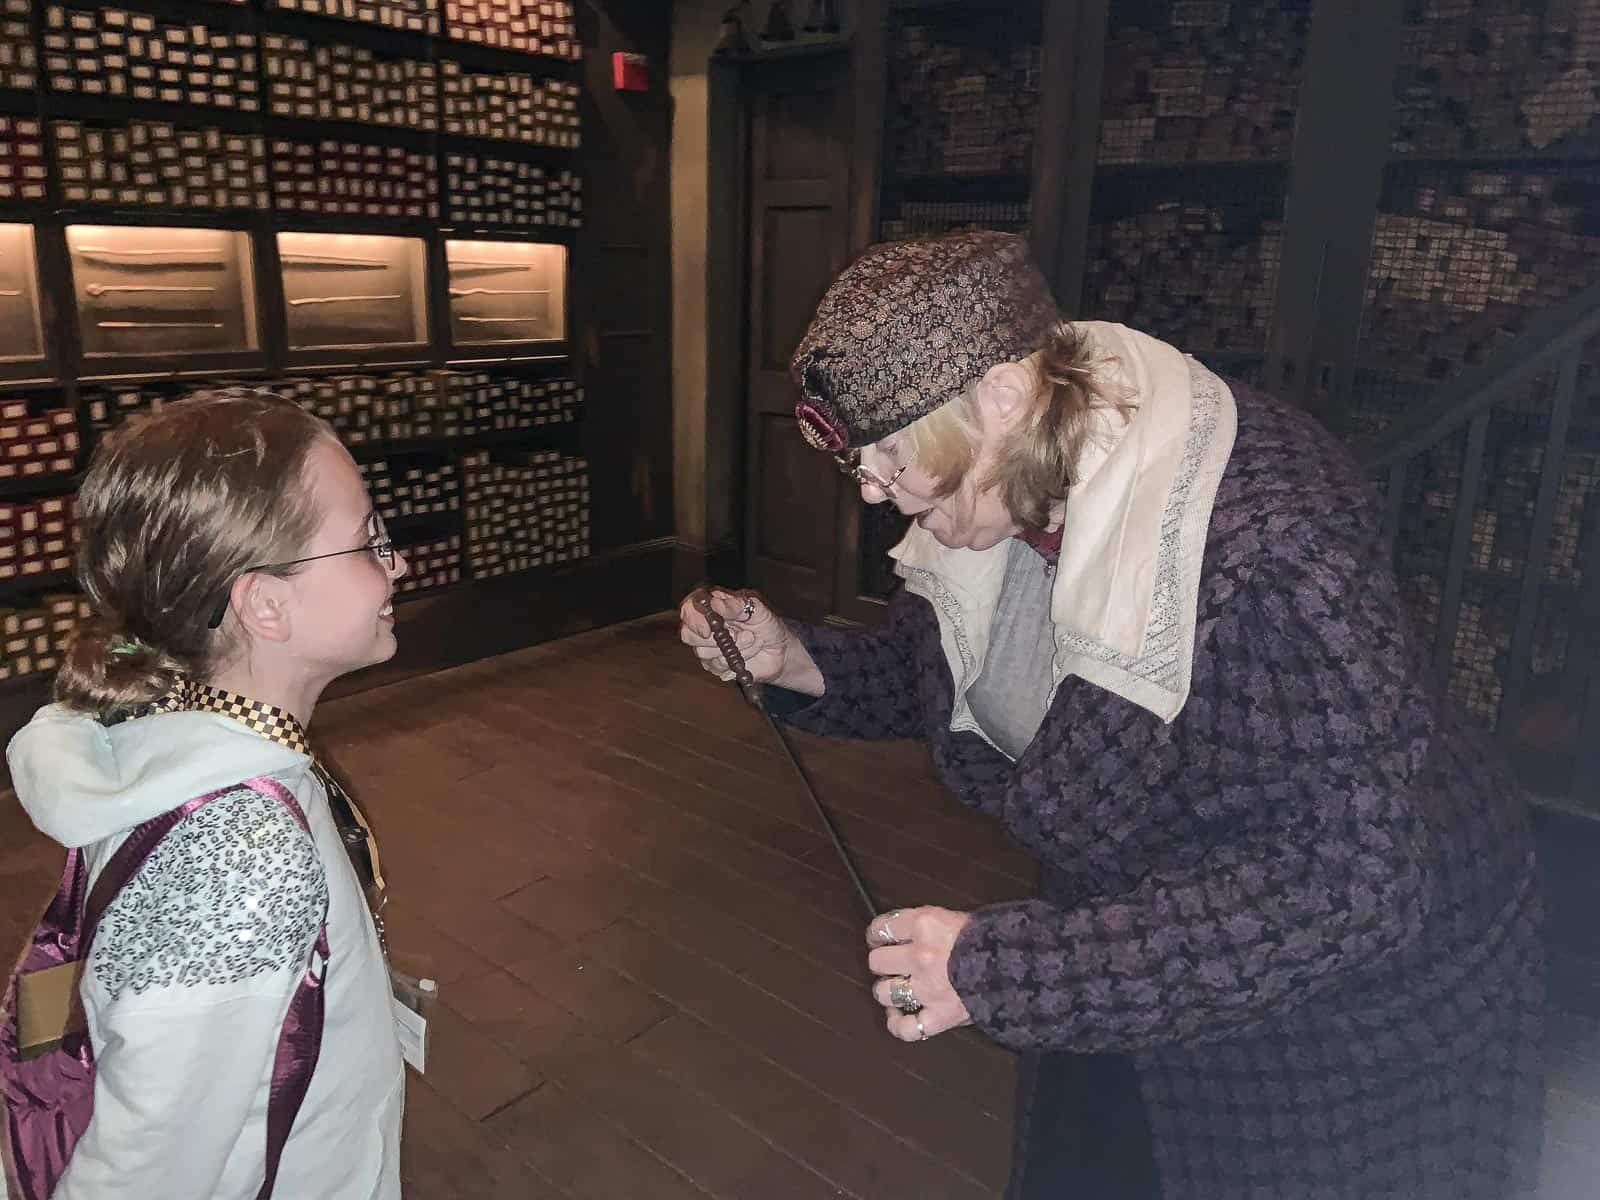 visiting ollivanders wand shop